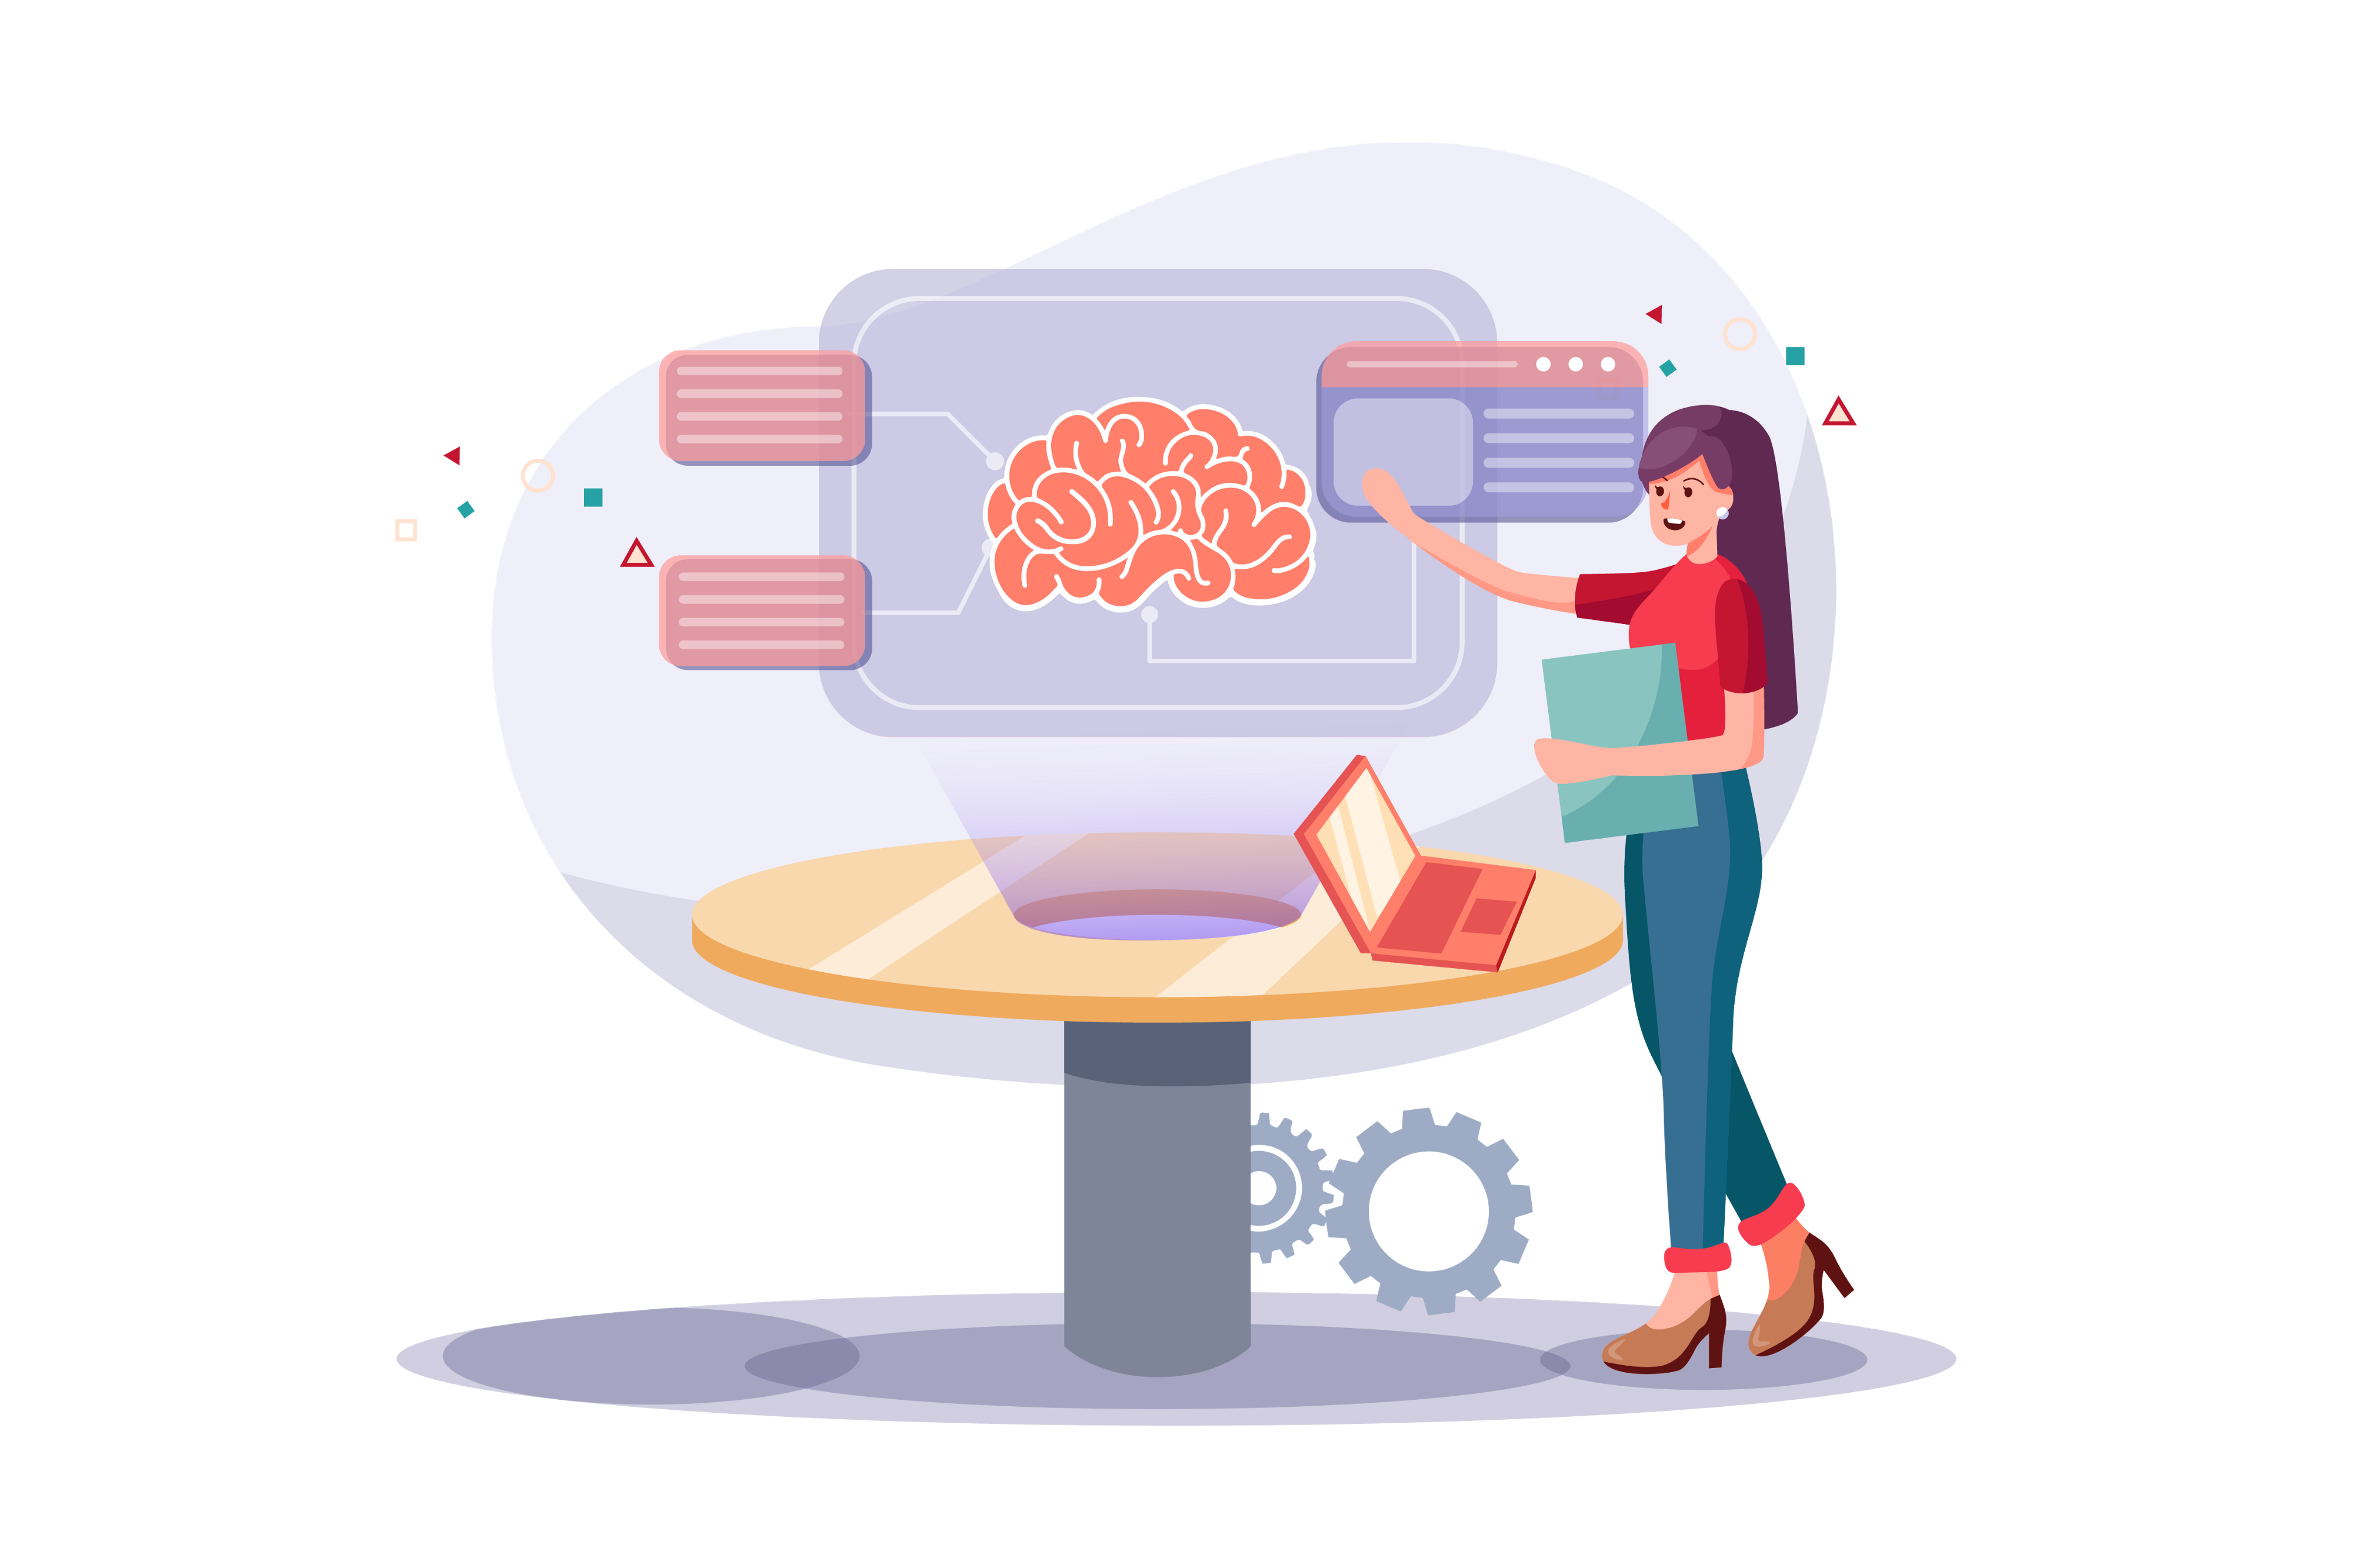 Illustration of a person presenting a concept that shows a brain and some annotations